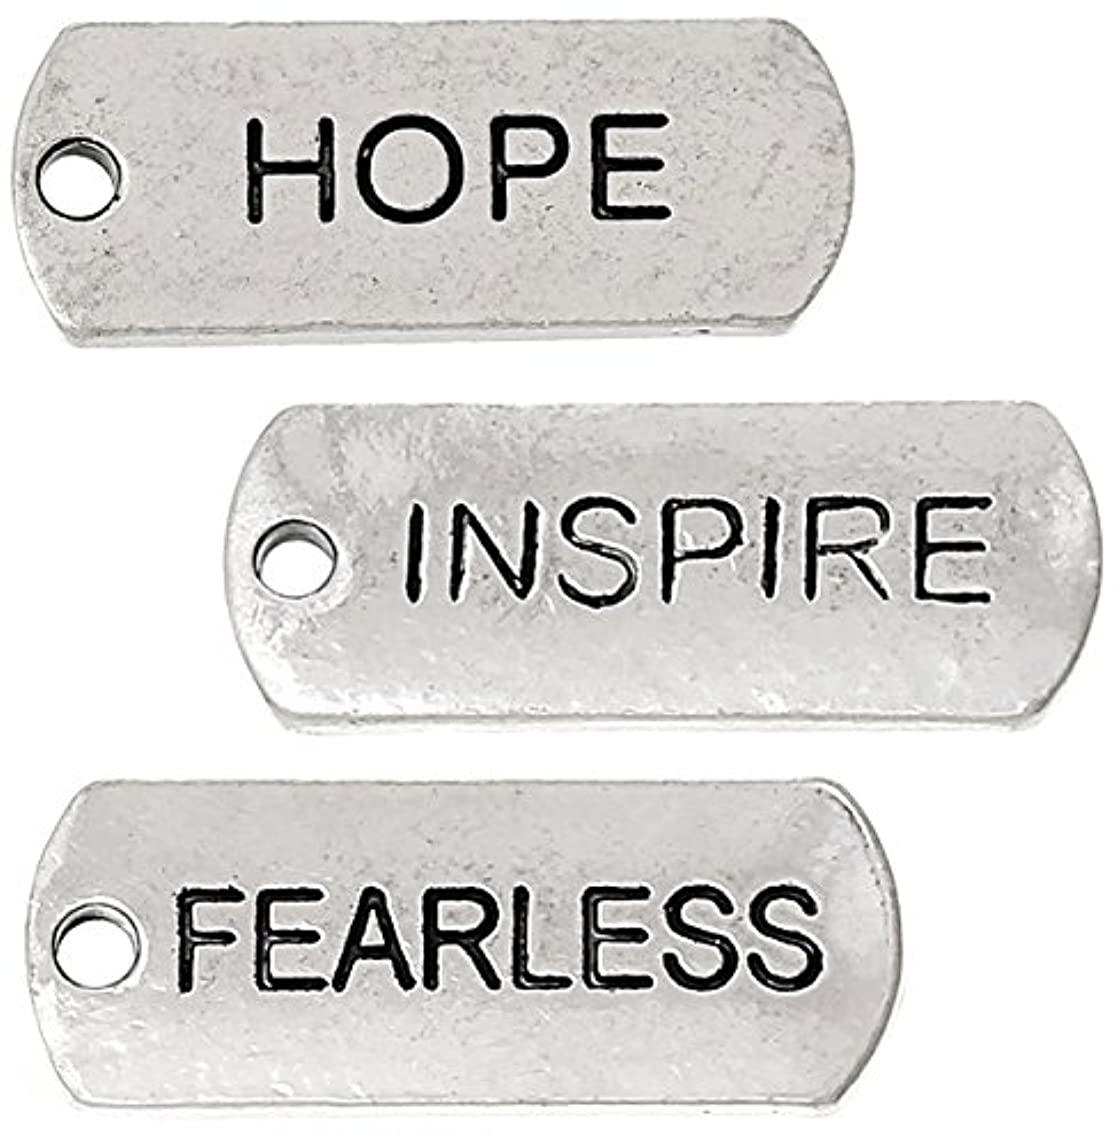 87 Pc Inspirational Message Charm Pendants, Silver Tone (Hope, Inspire, Fearless)